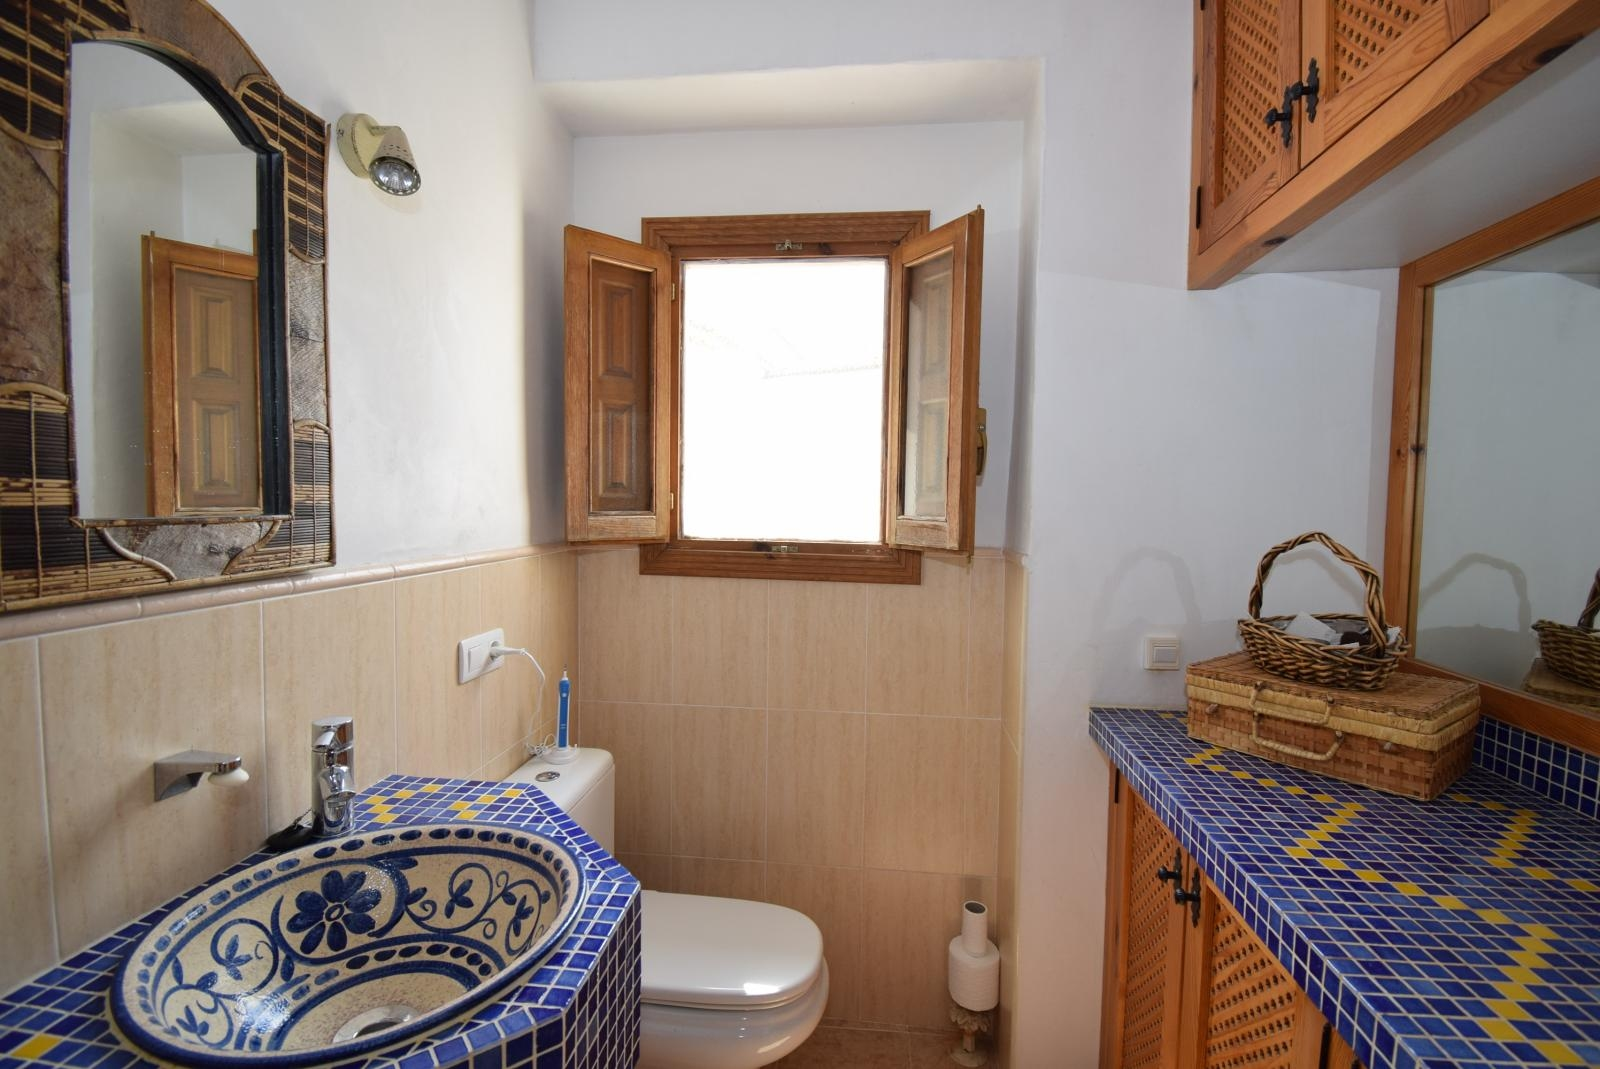 3 BED 2 BATH FULLY RENOVATED TOWNHOUSE TO HIGH STANDARDS WITH SUNNY PATIO